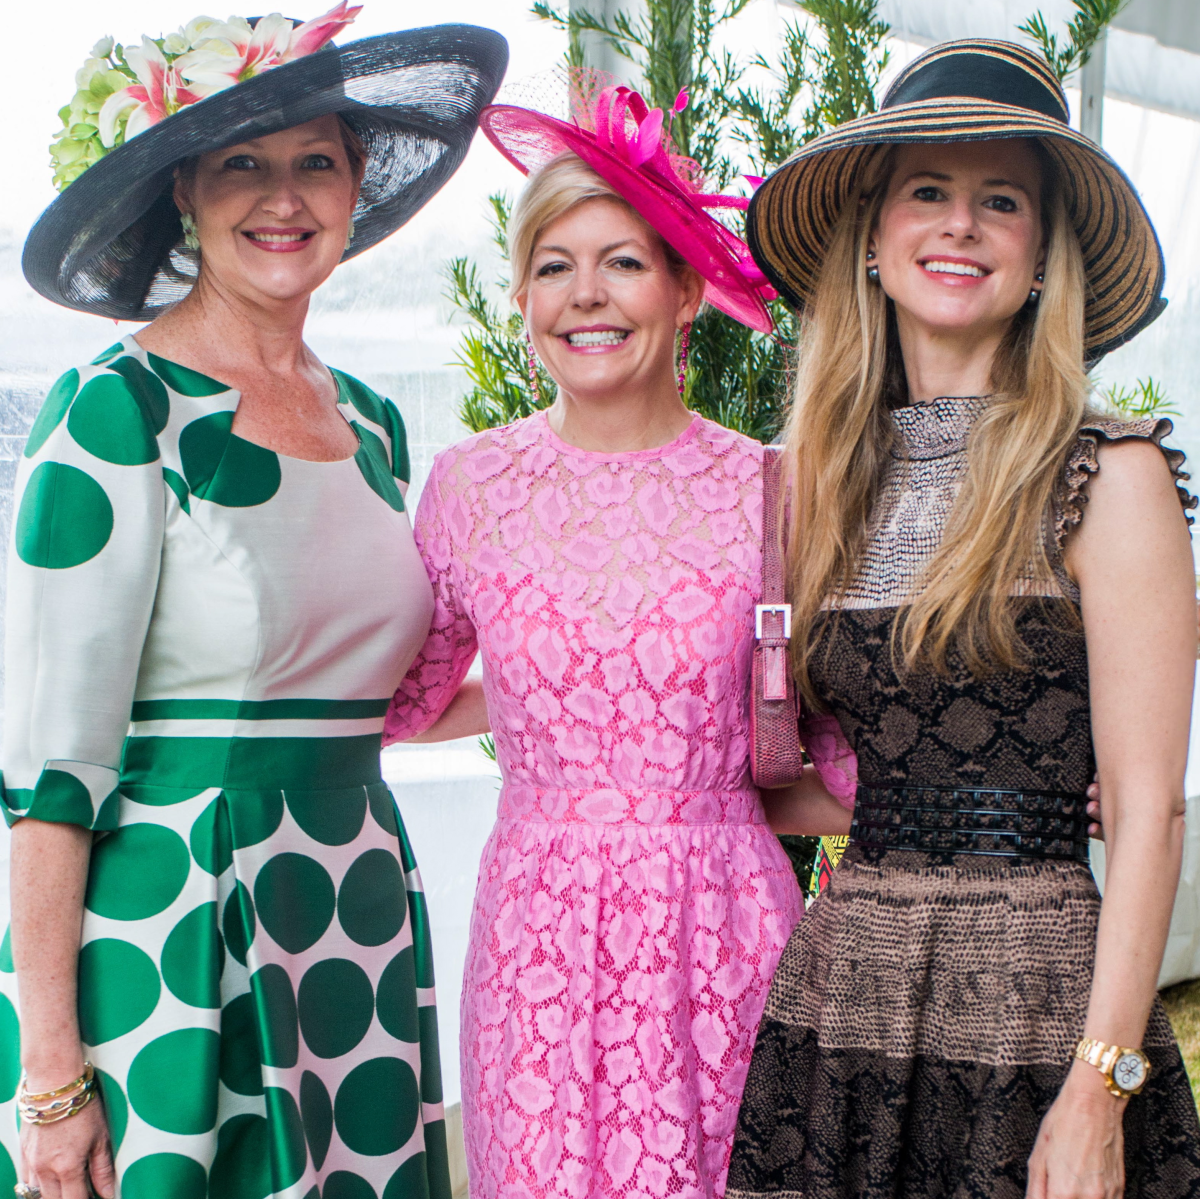 Hats in the Park, March 2016, Joella Mach, Michelle Foutch, Blakely Griggs